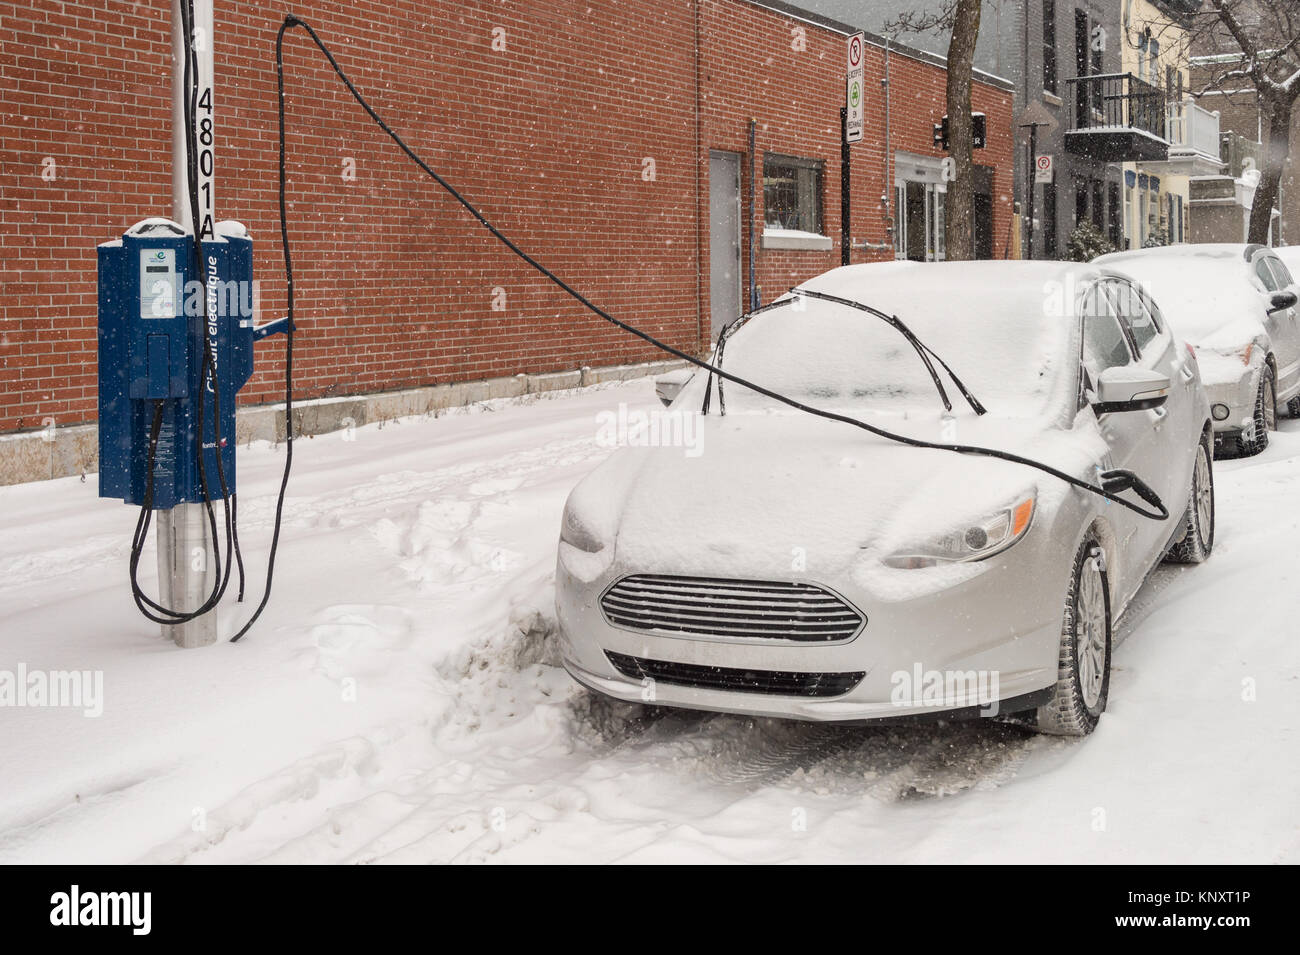 Montreal, Canada - 12 December 2017: Electric car getting charged in Montreal during snowstorm - Stock Image